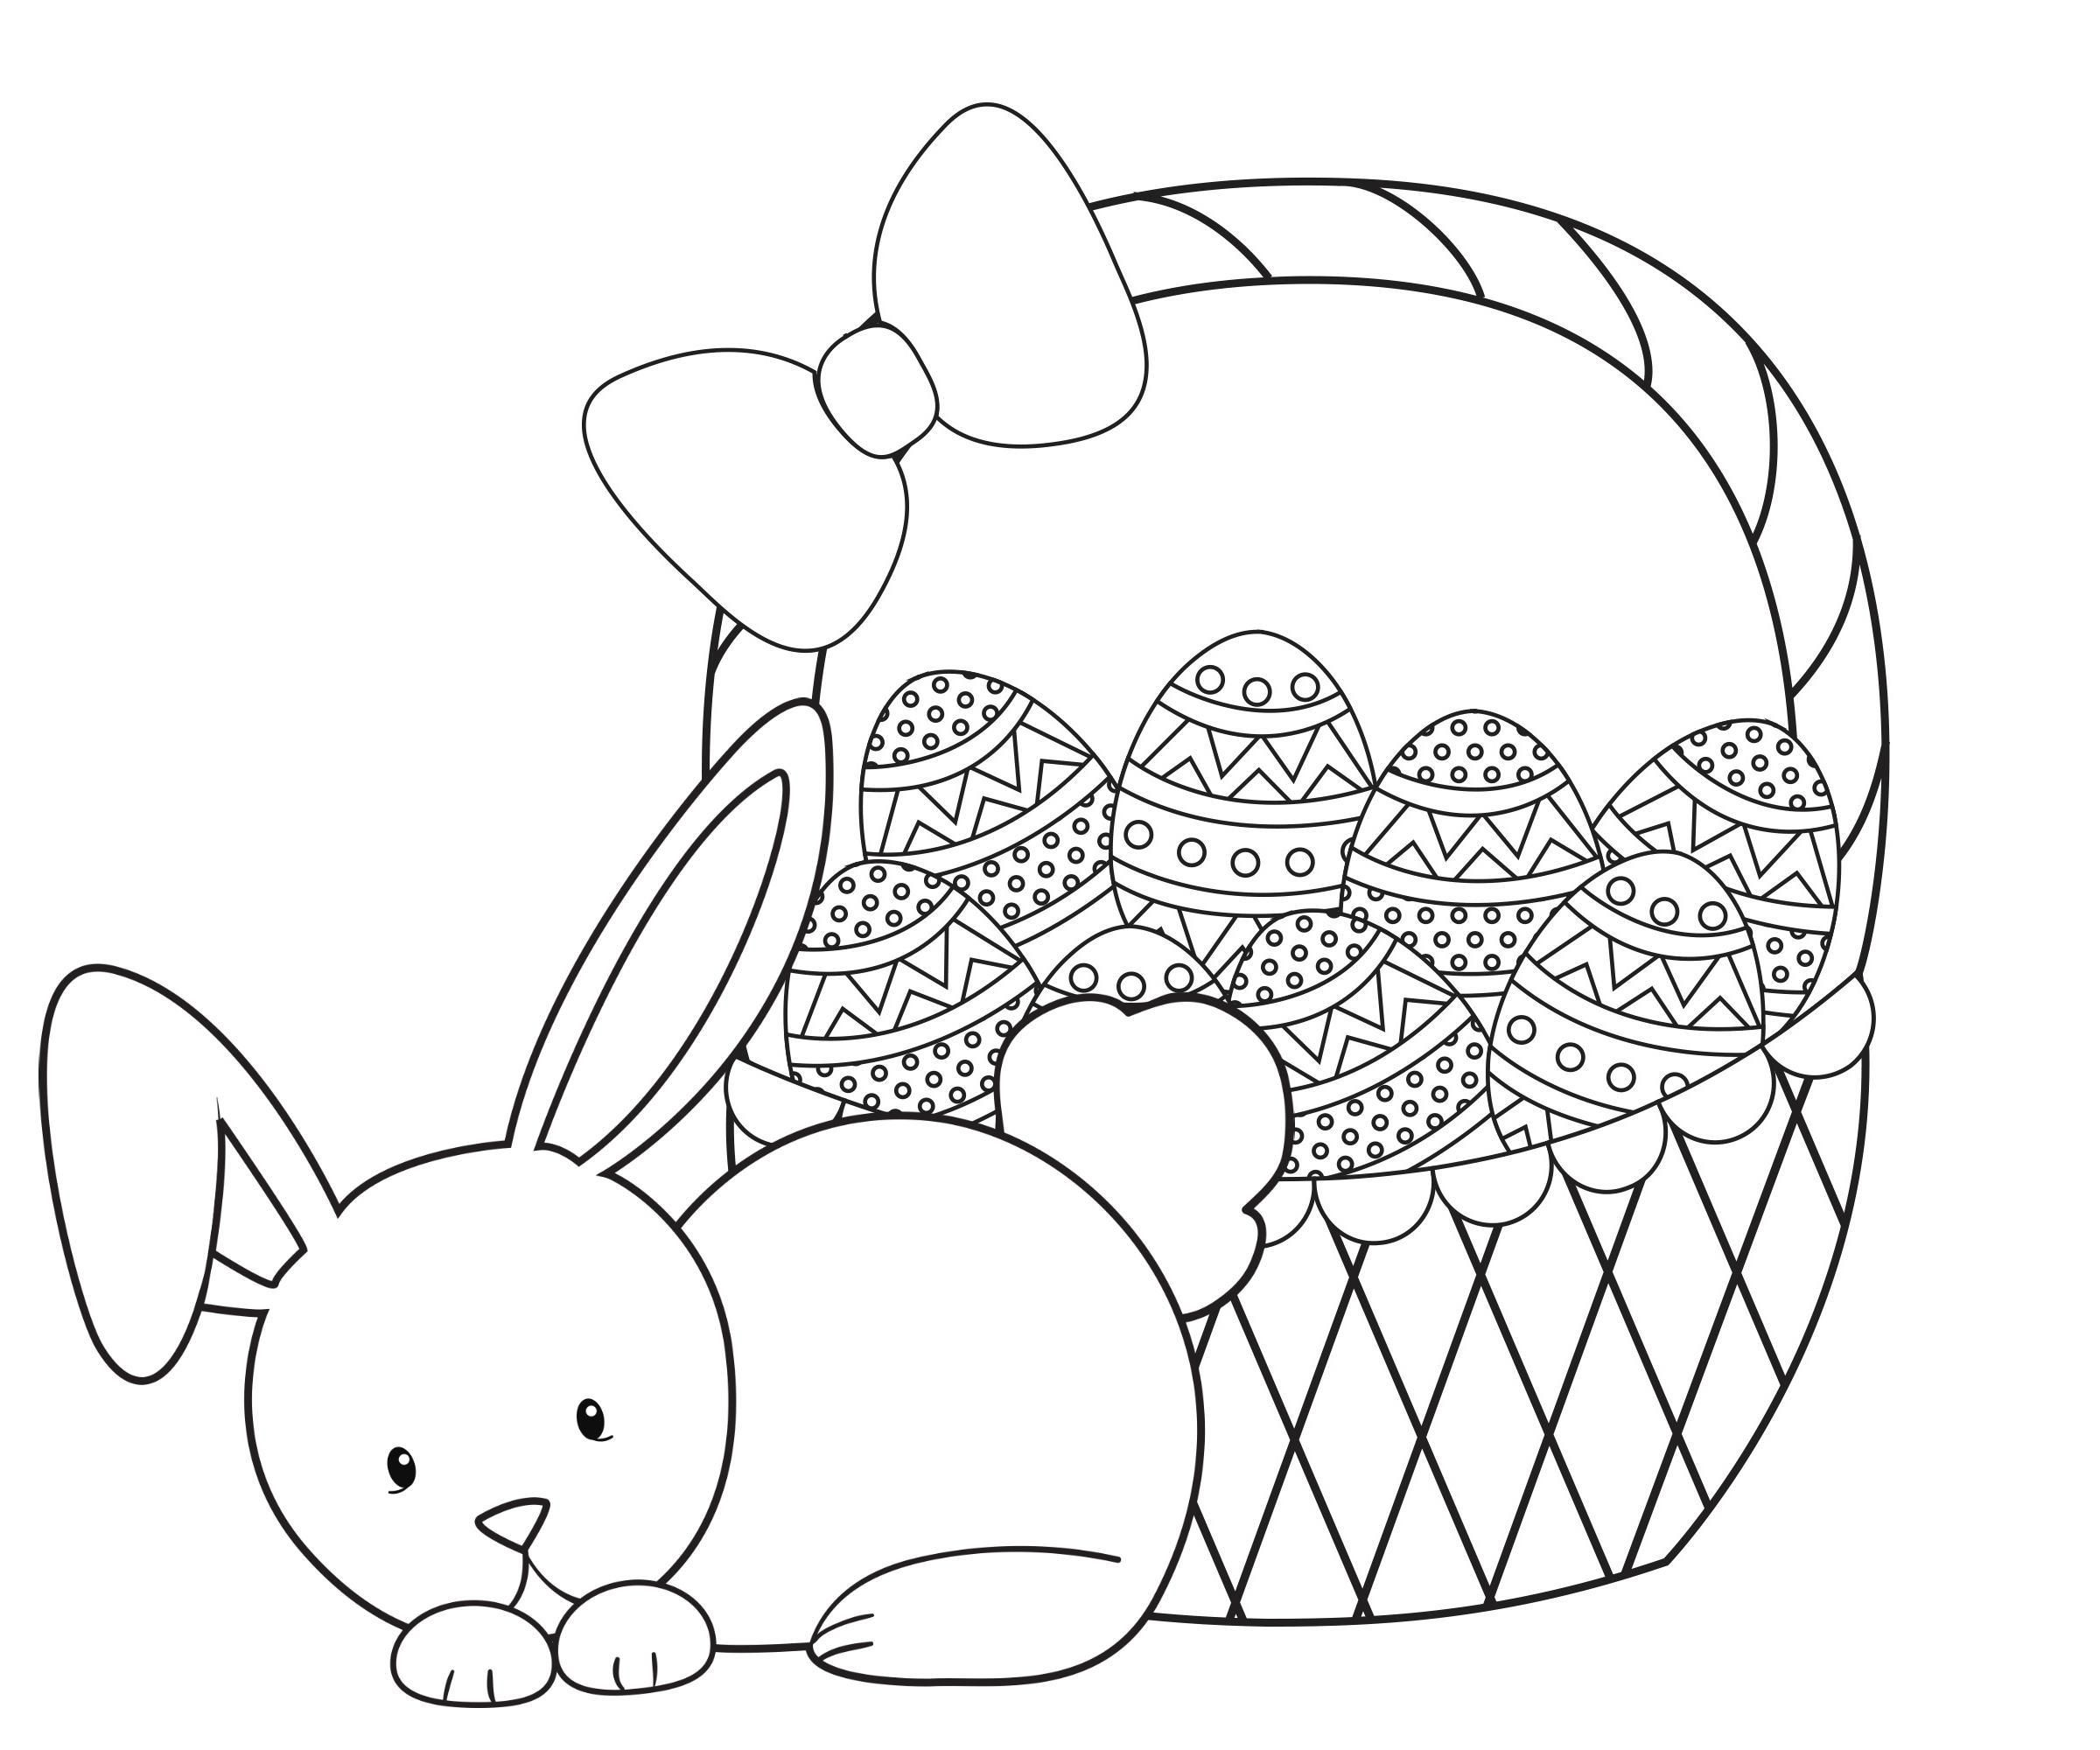 - Coloring Pages For Kids Download In 2020 Bunny Coloring Pages